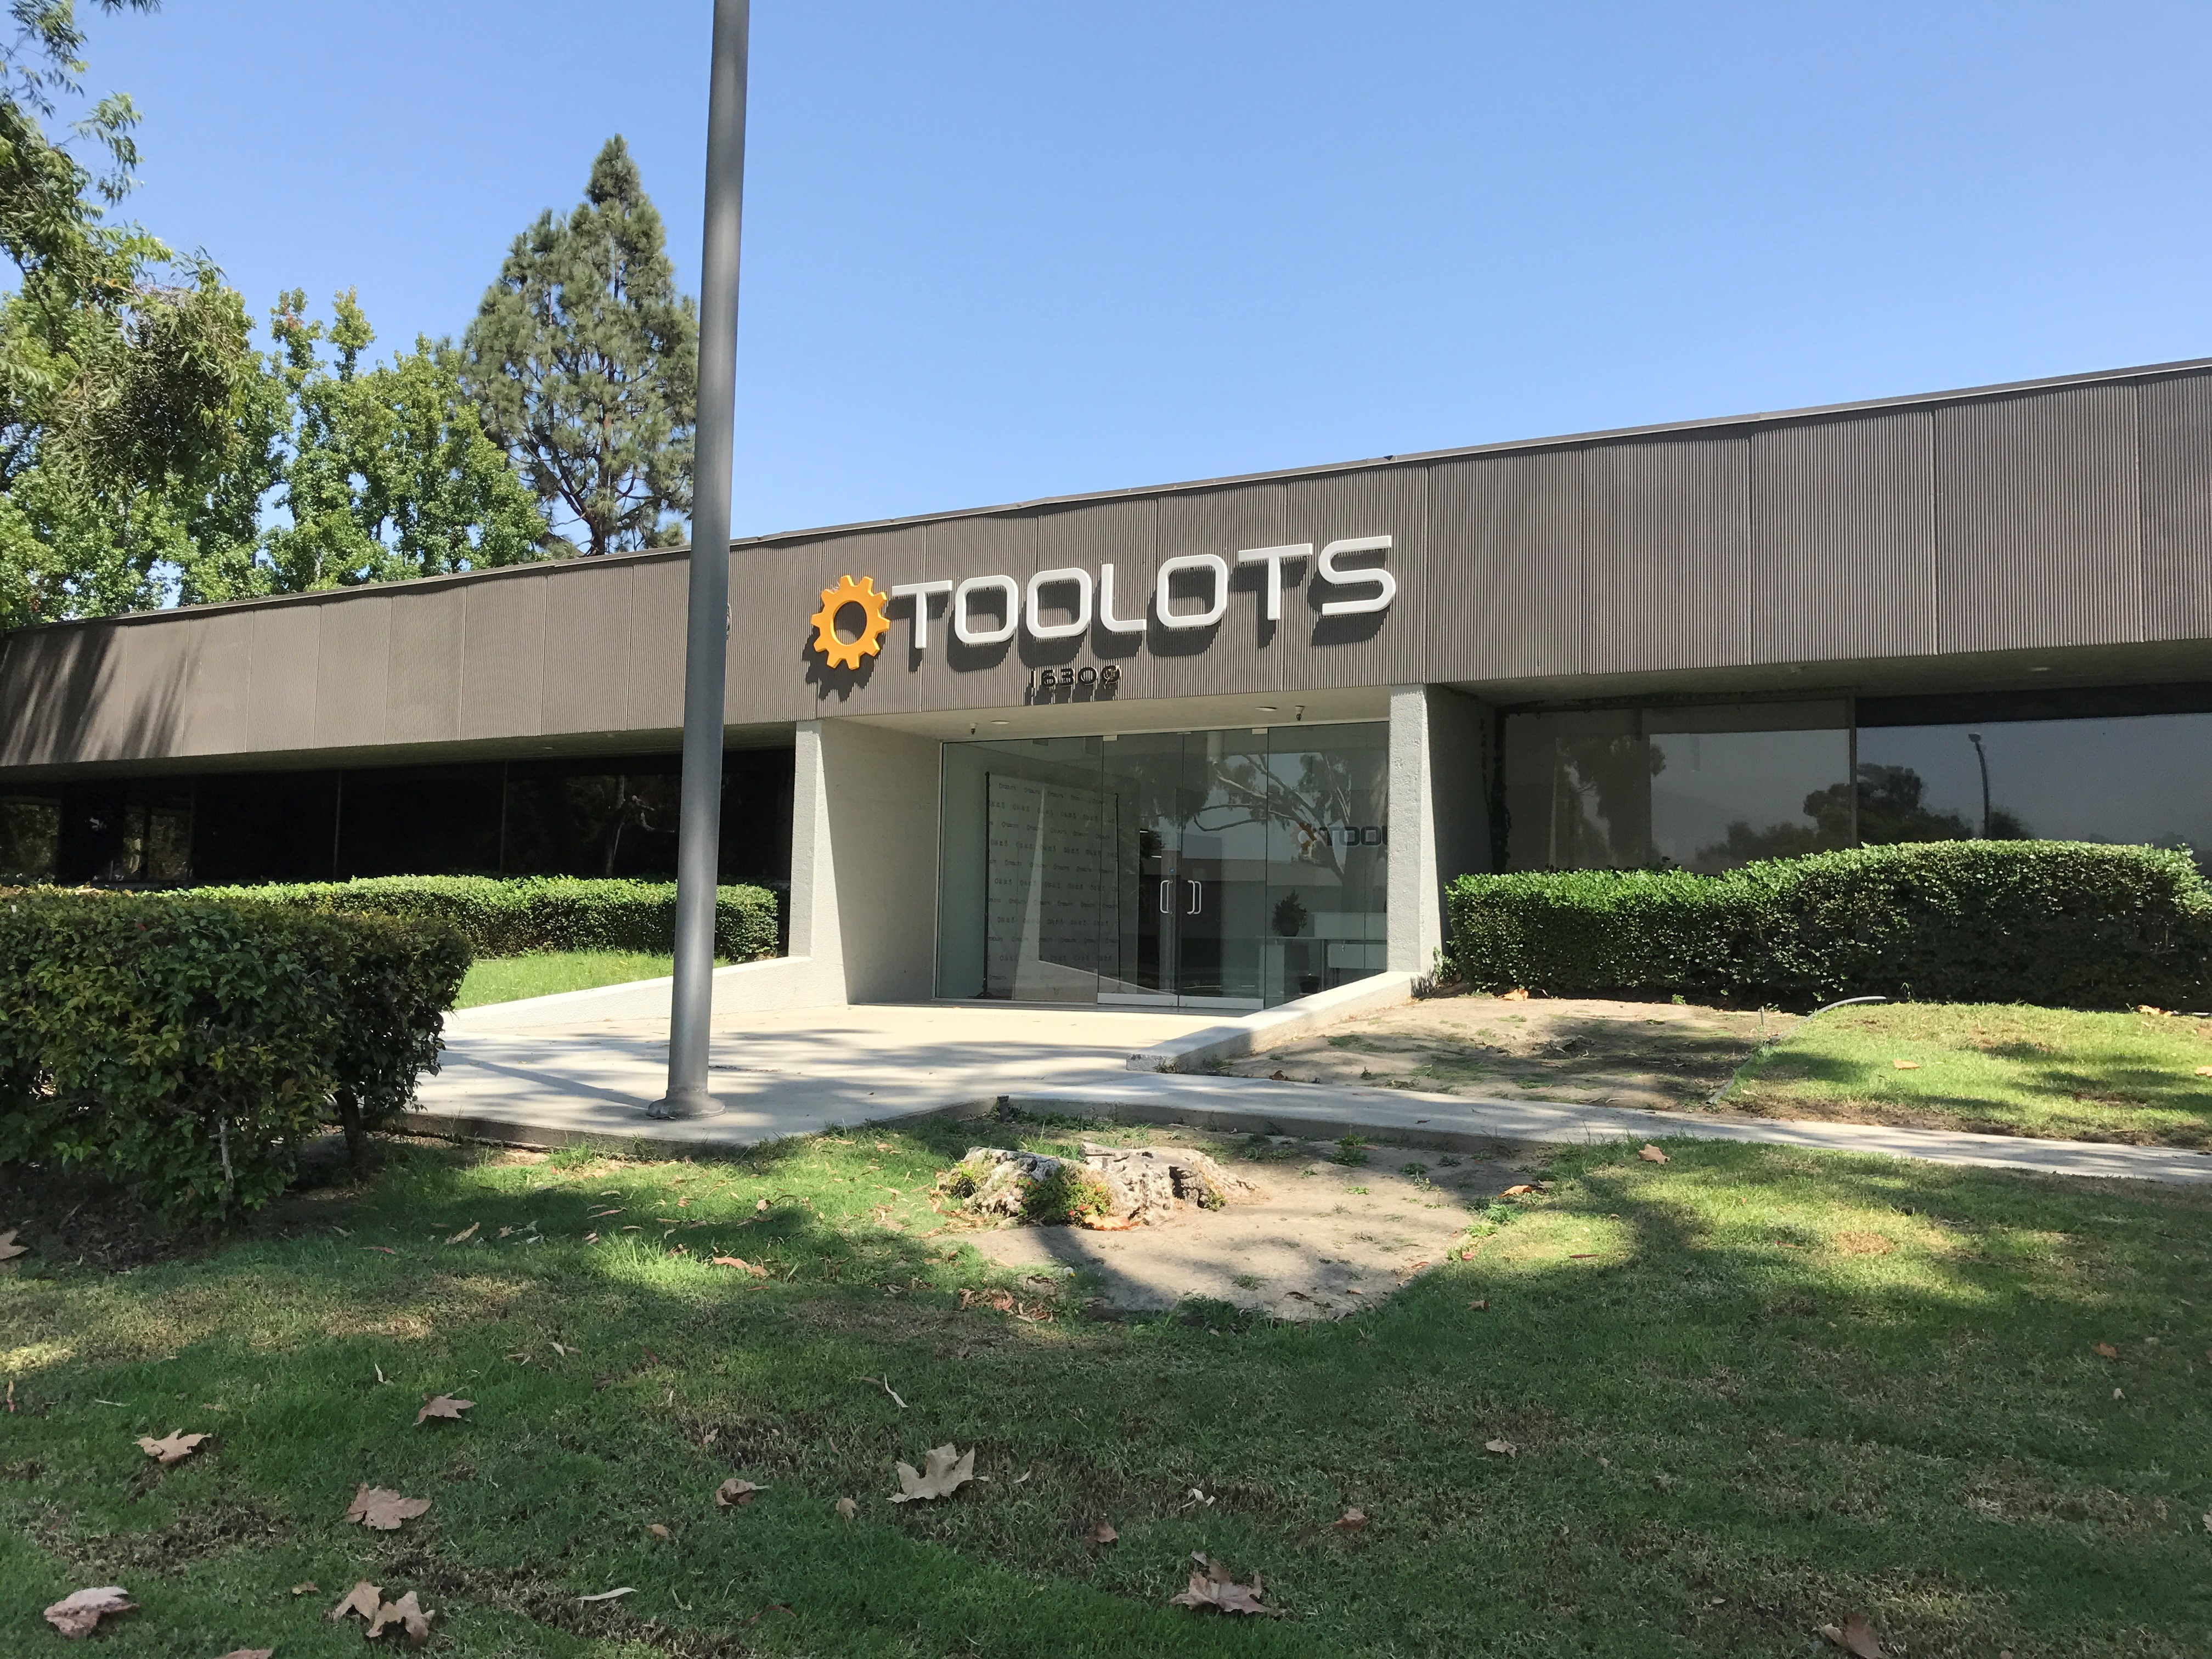 Toolots image 3